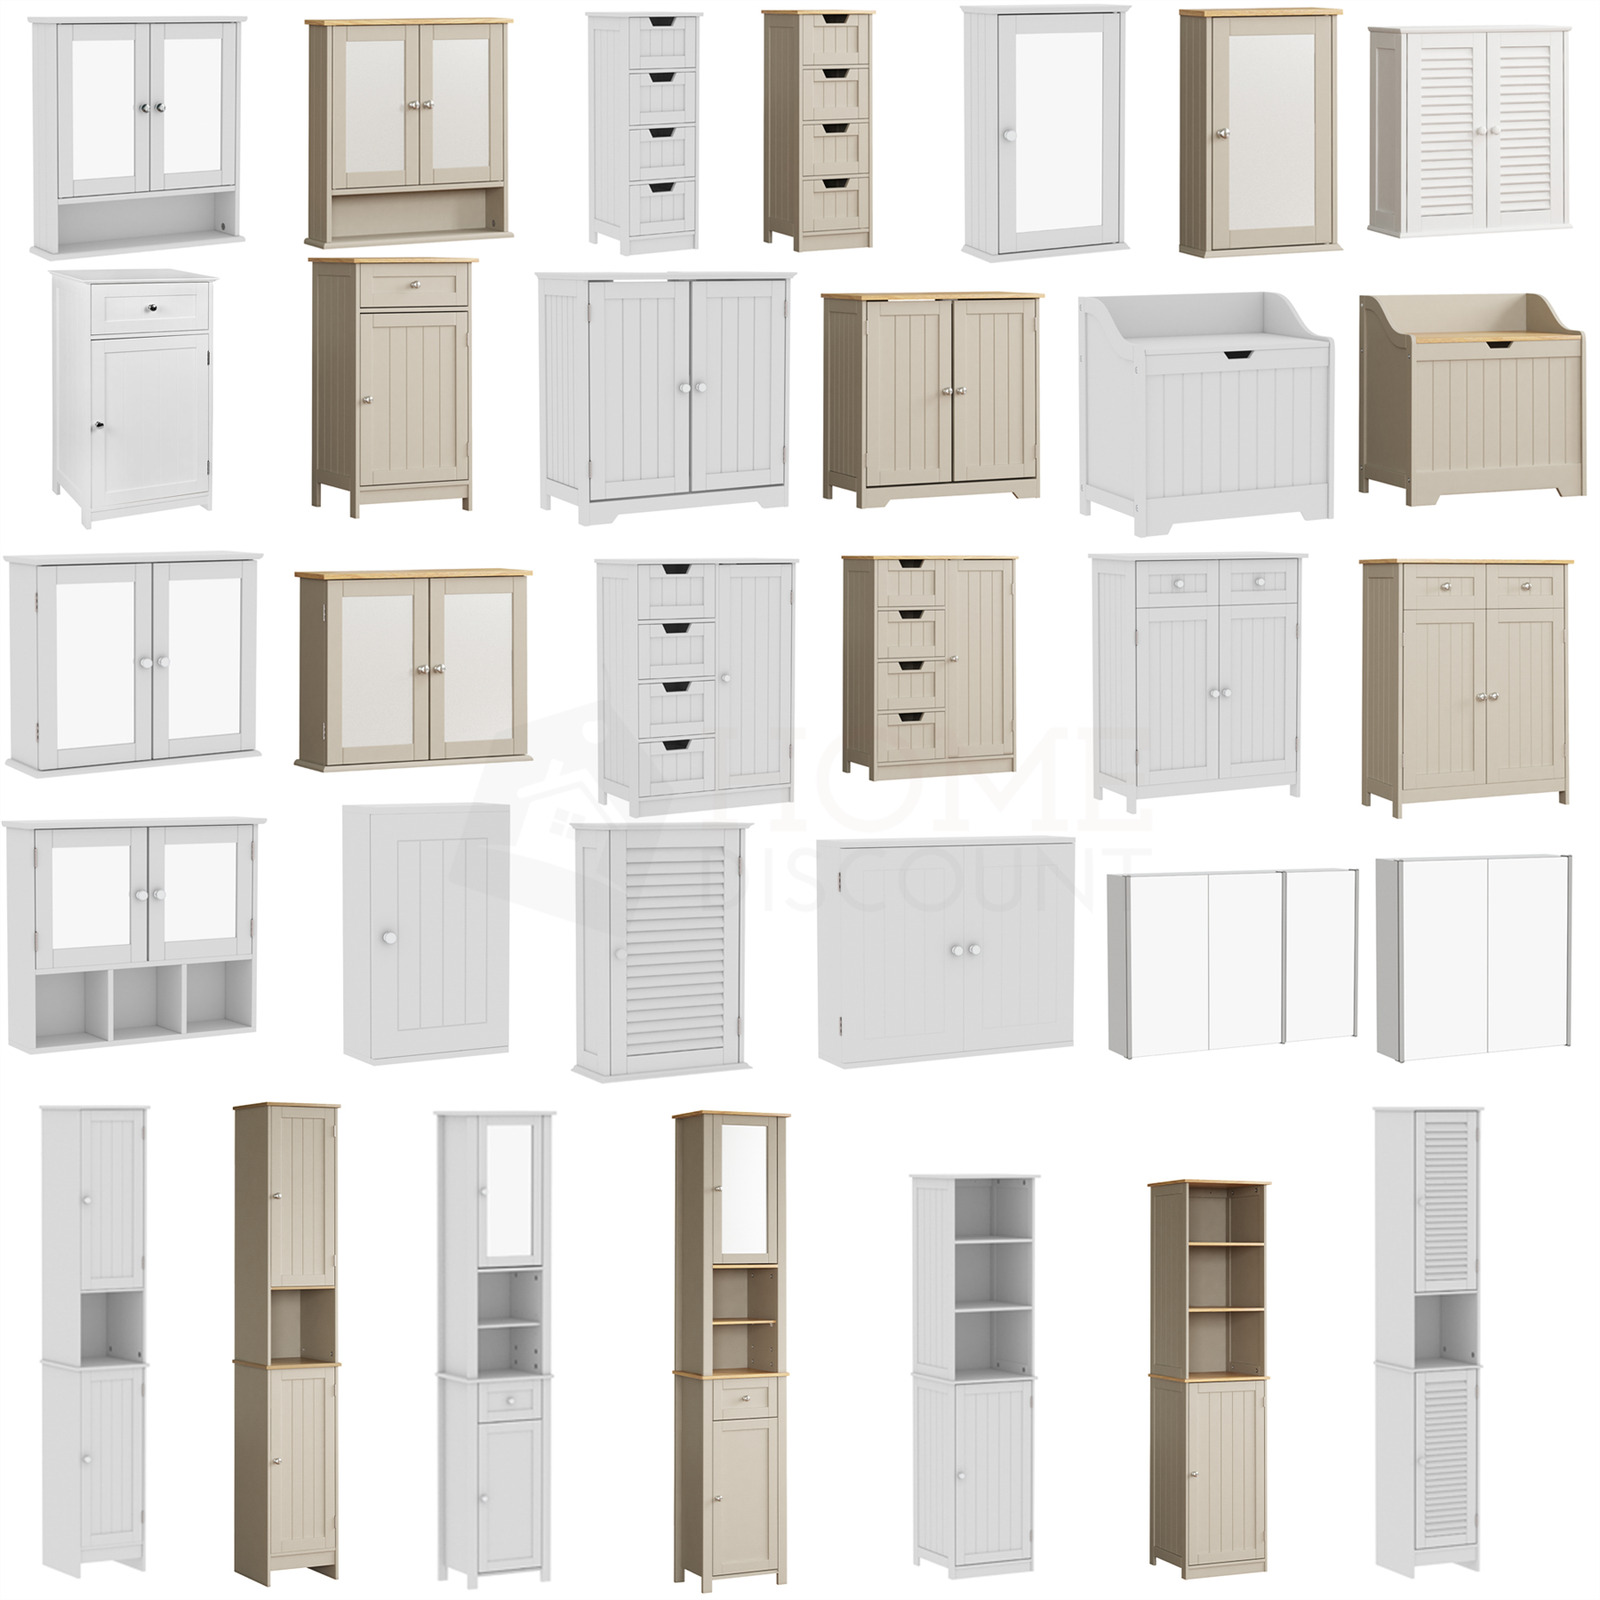 Bathroom cabinet single double door wall mounted tallboy for Bathroom cabinets ebay australia